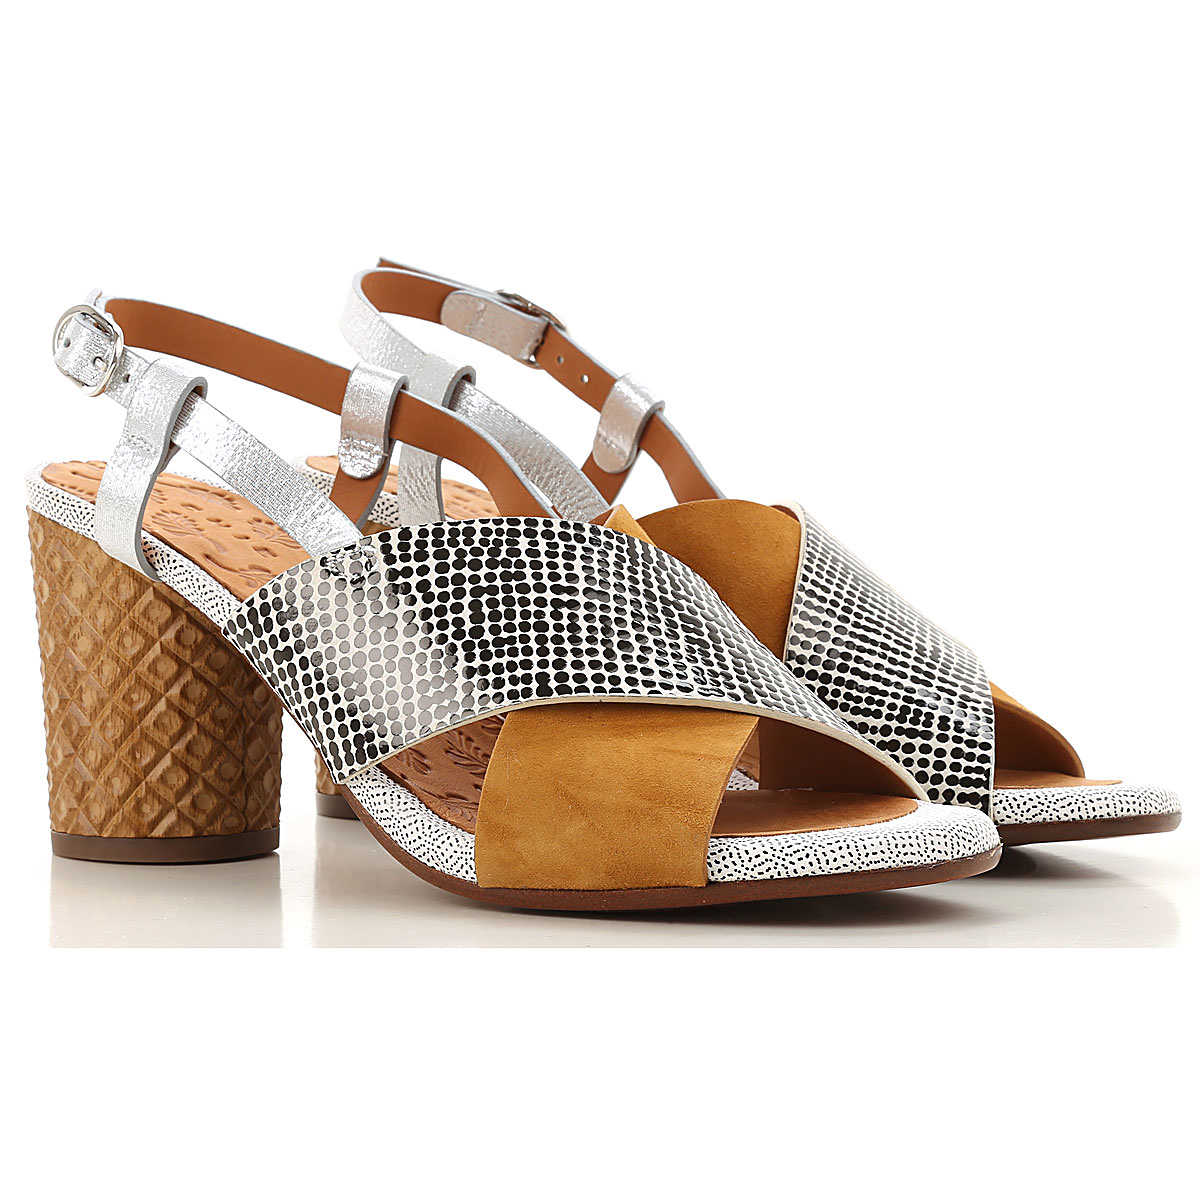 Chie Mihara Sandals for Women On Sale Cognac - GOOFASH